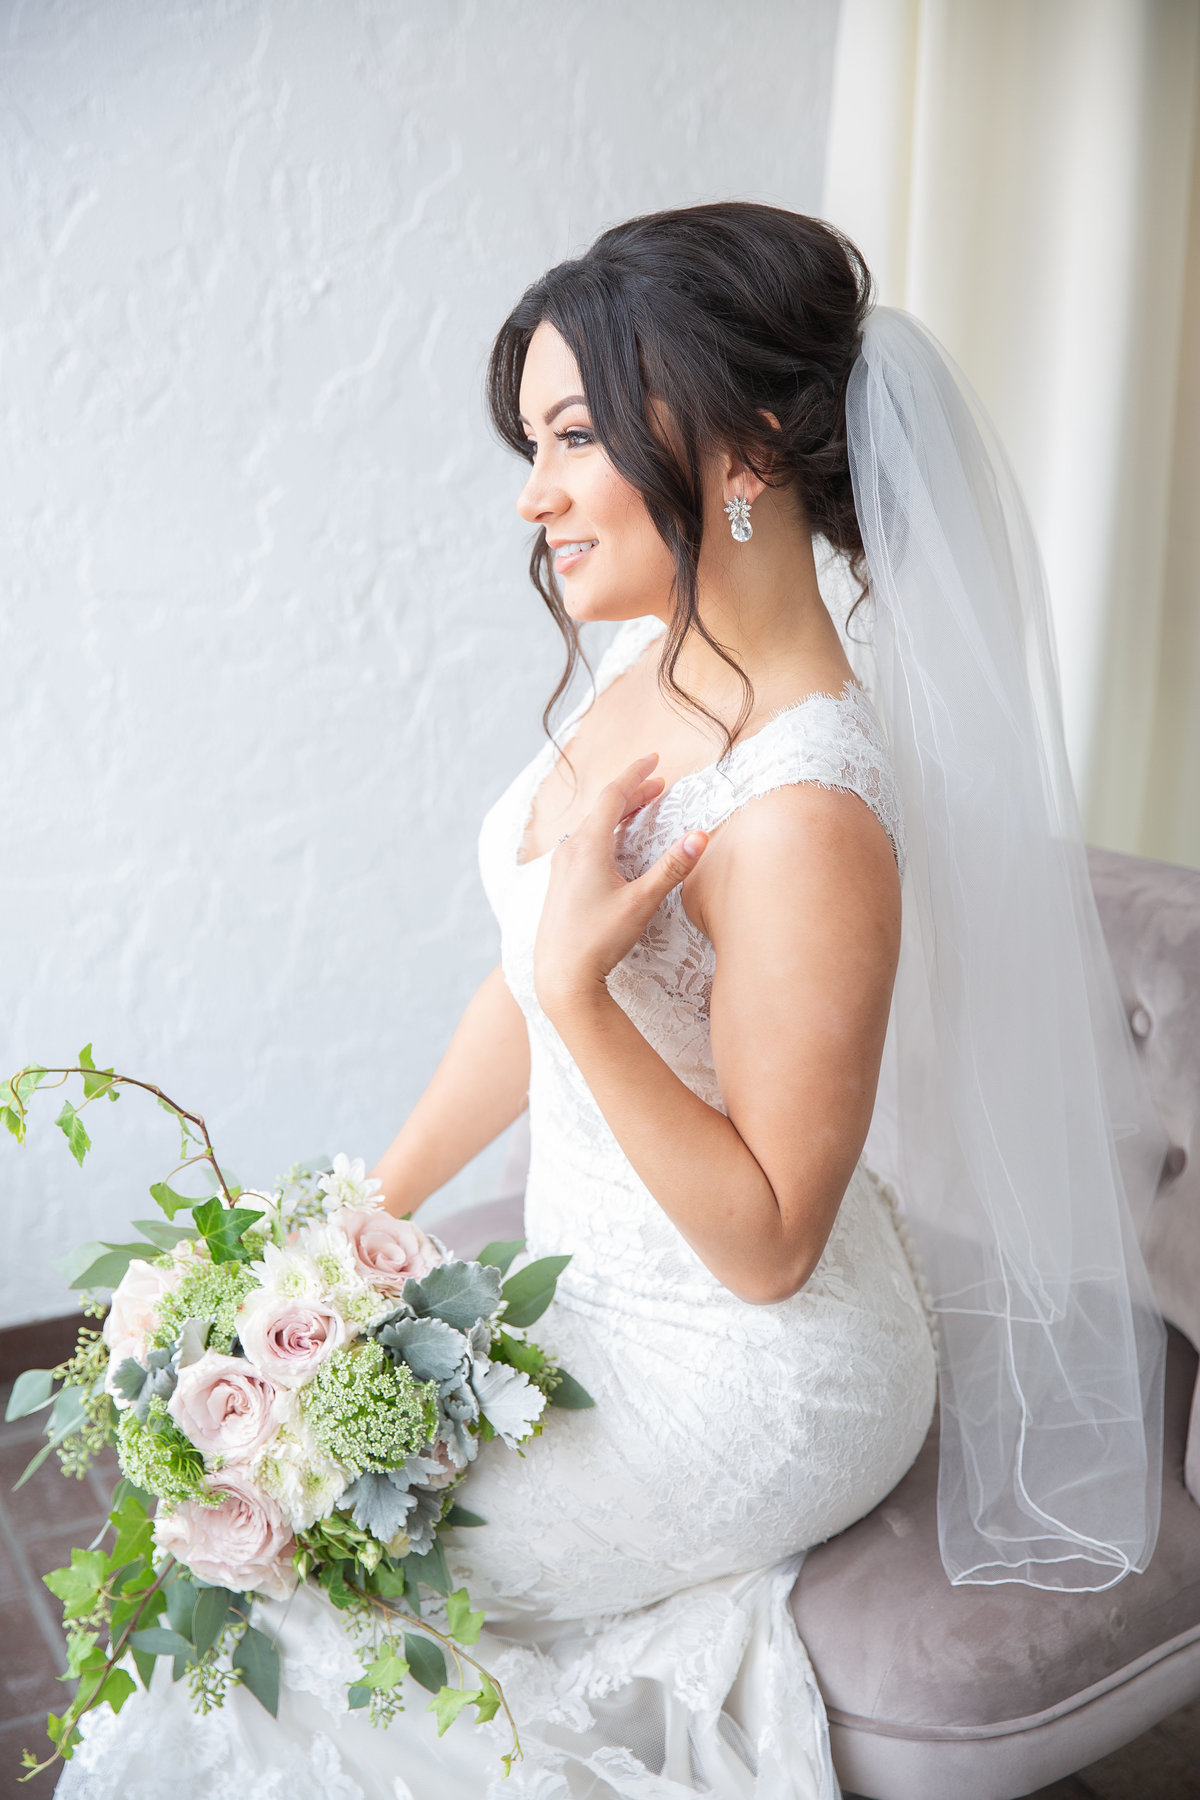 Biloxi-Wedding-Photographers-0737-Kayce-Stork